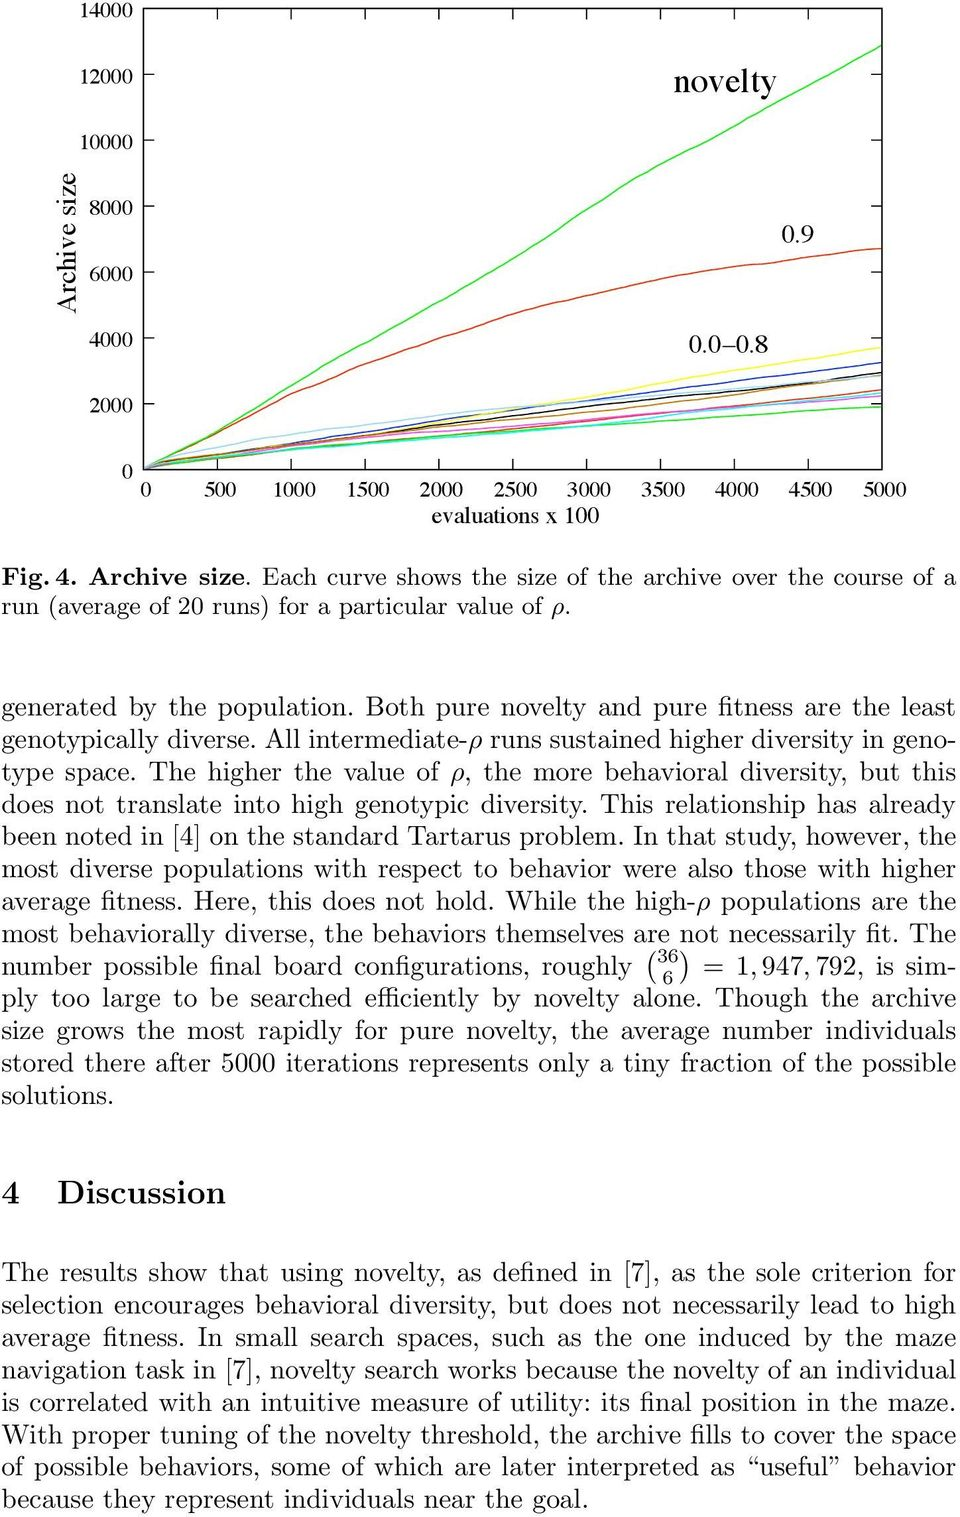 The higher the value of ρ, the more behavioral diversity, but this does not translate into high genotypic diversity. This relationship has already been noted in [4] on the standard Tartarus problem.